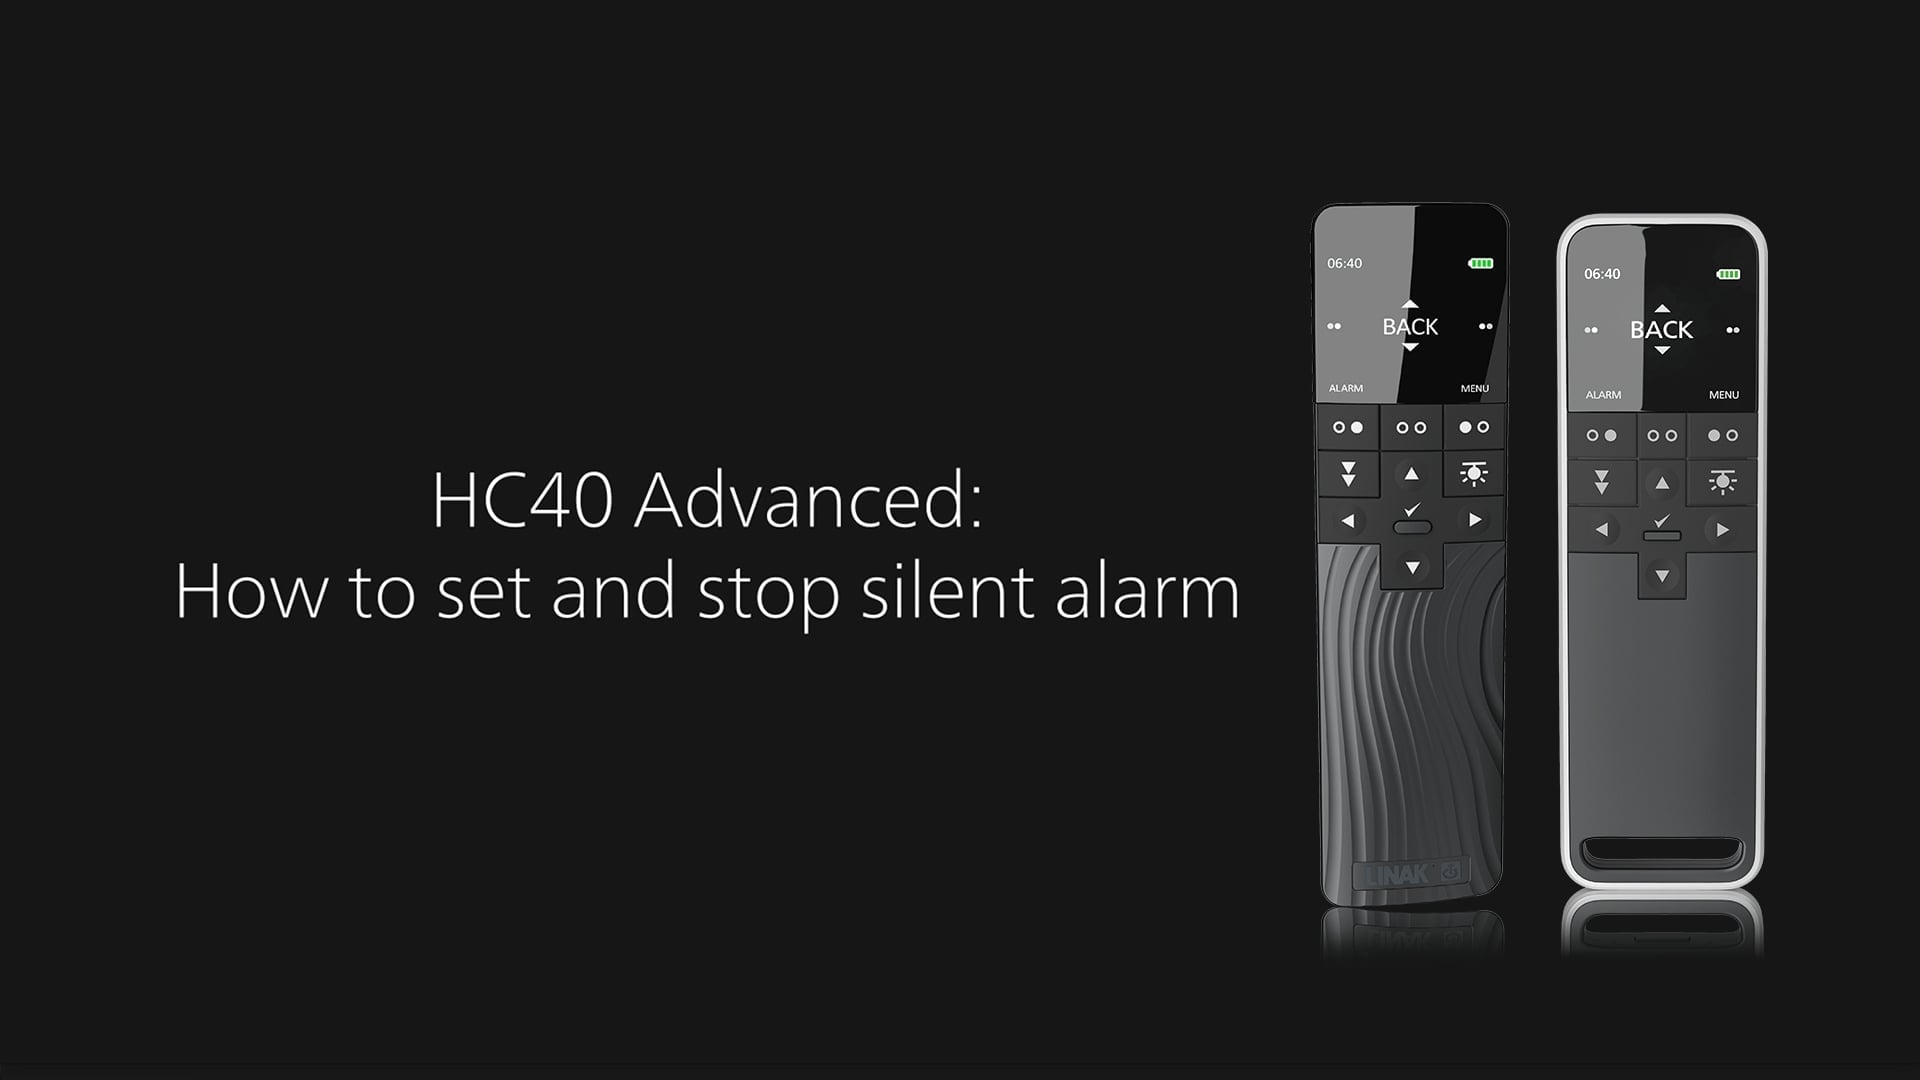 HC40 Advanced - How to set and stop silent alarm